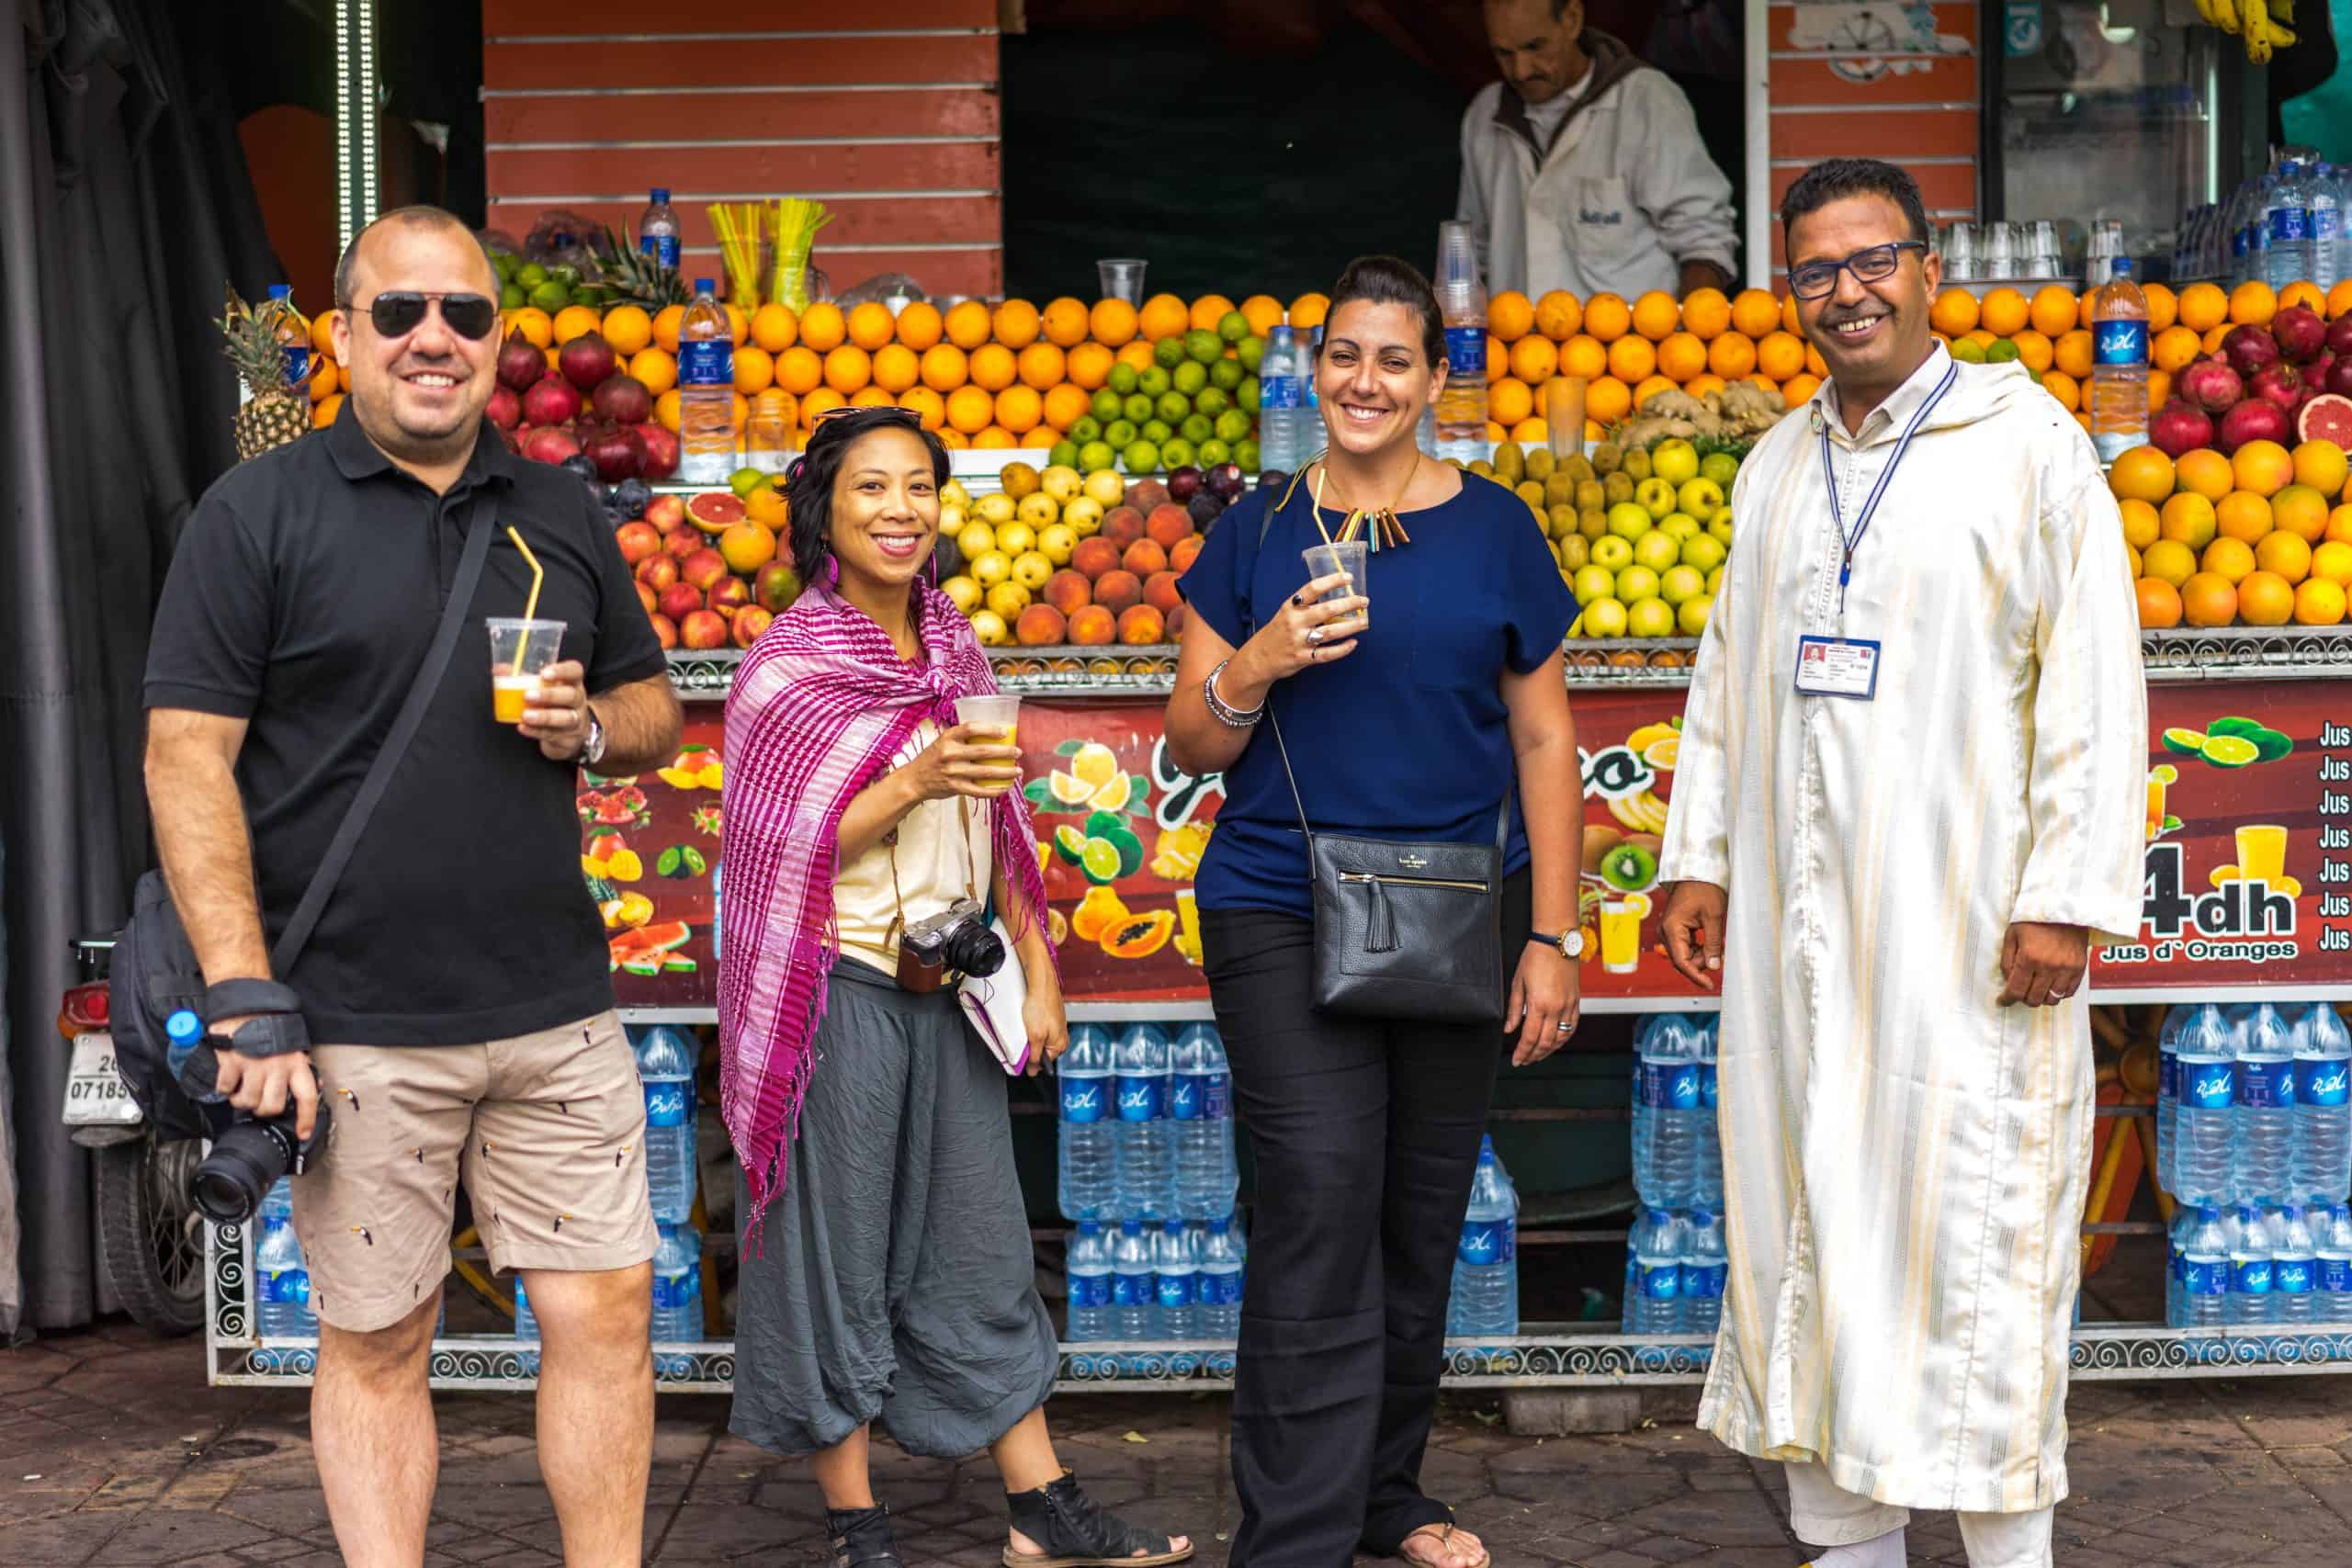 Branding Campaign - Moroccan Food Tour